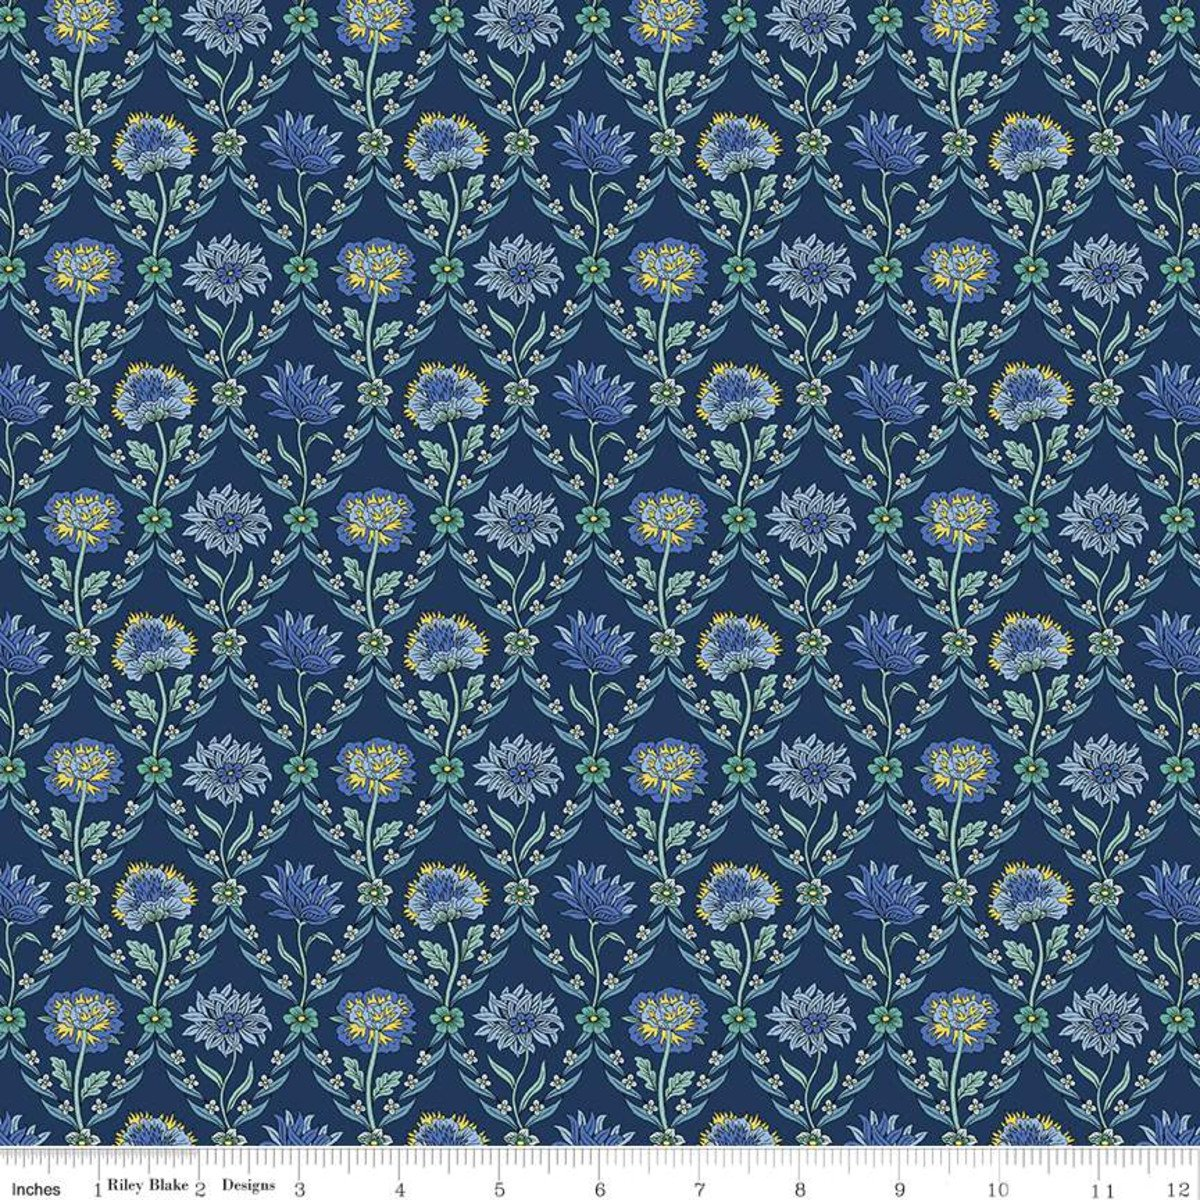 Liberty of London - The Summer House Collection - Kew Trellis - Navy